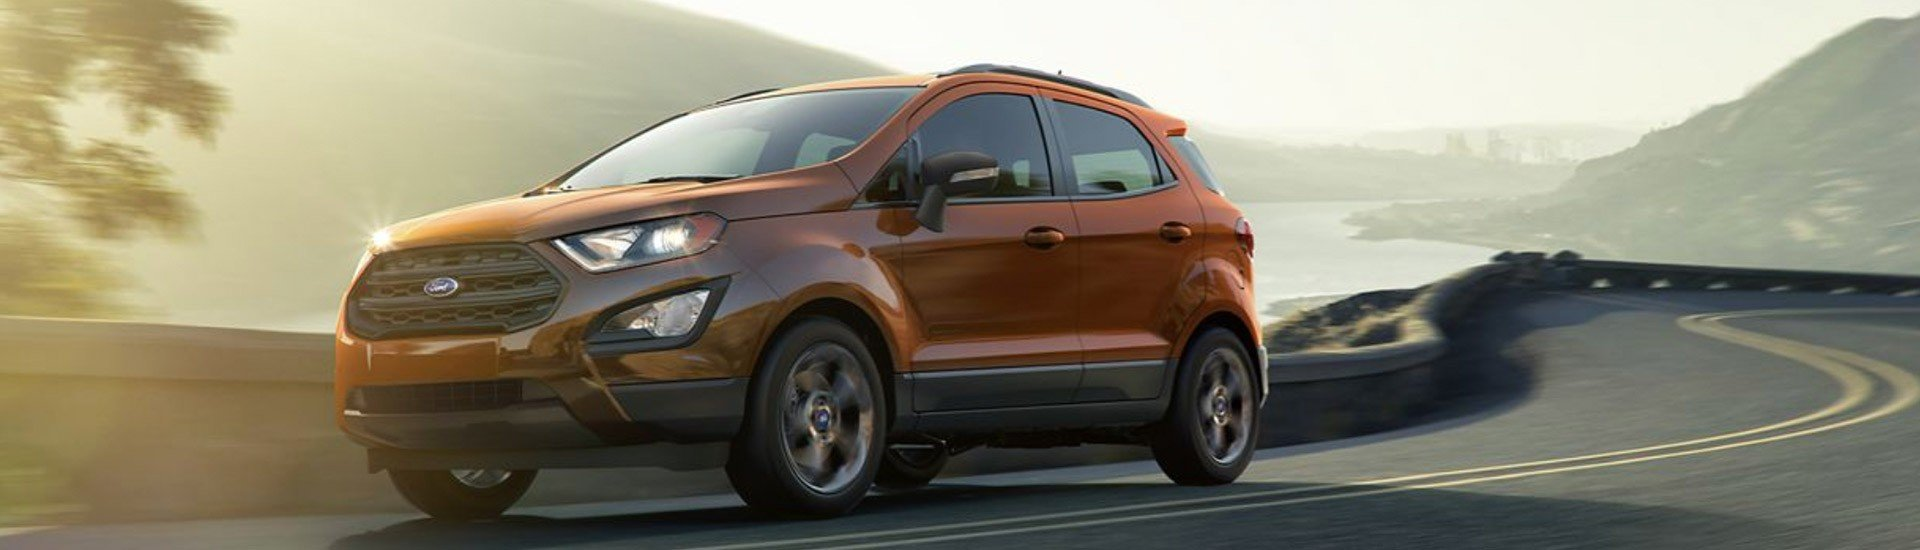 2019 Ford Ecosport Se Fwd Suv For Sale Toledo Oh 48173